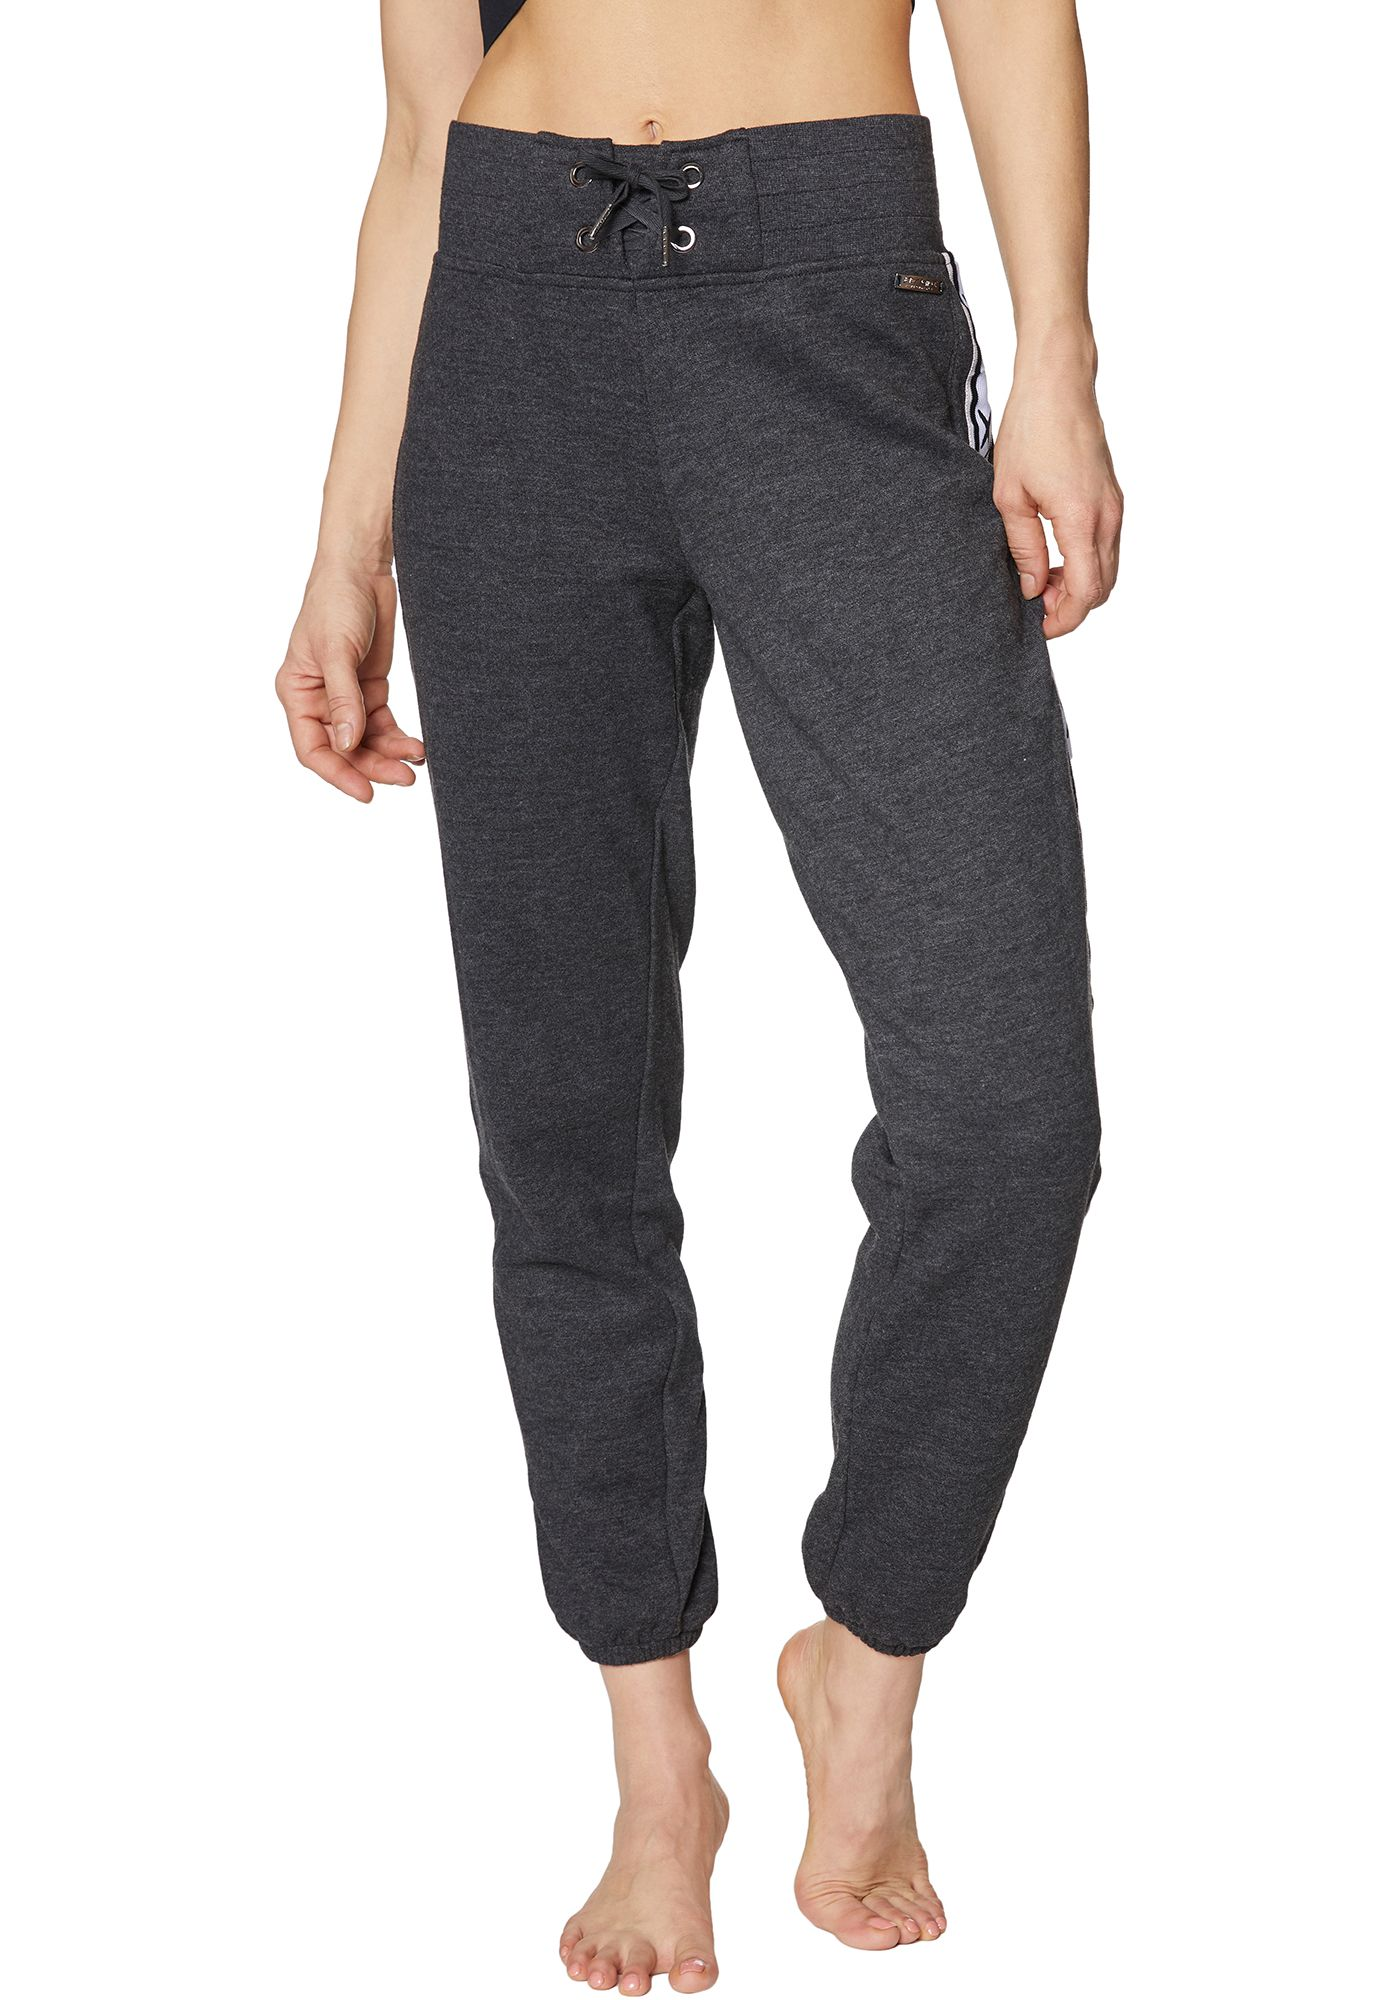 Betsey Johnson Women's X-Tape Sweatpant